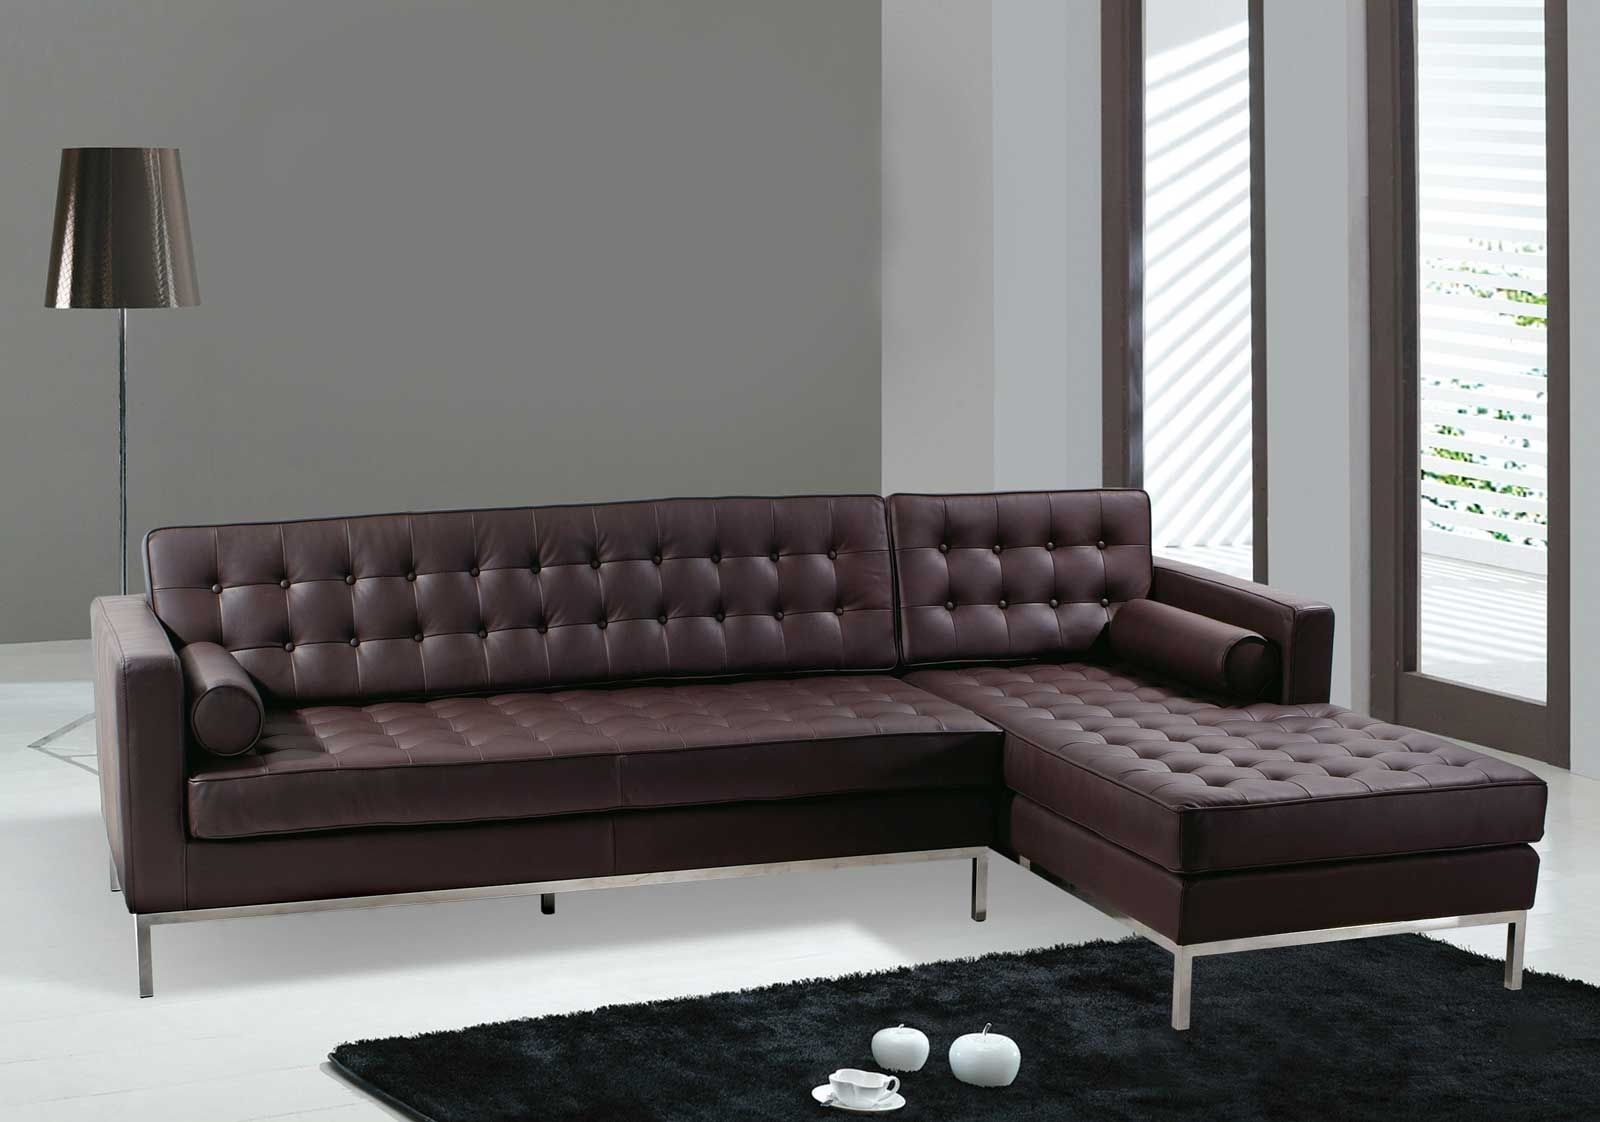 Pin by homysofa on Sofas & Couches | Leather sectional sofas ...